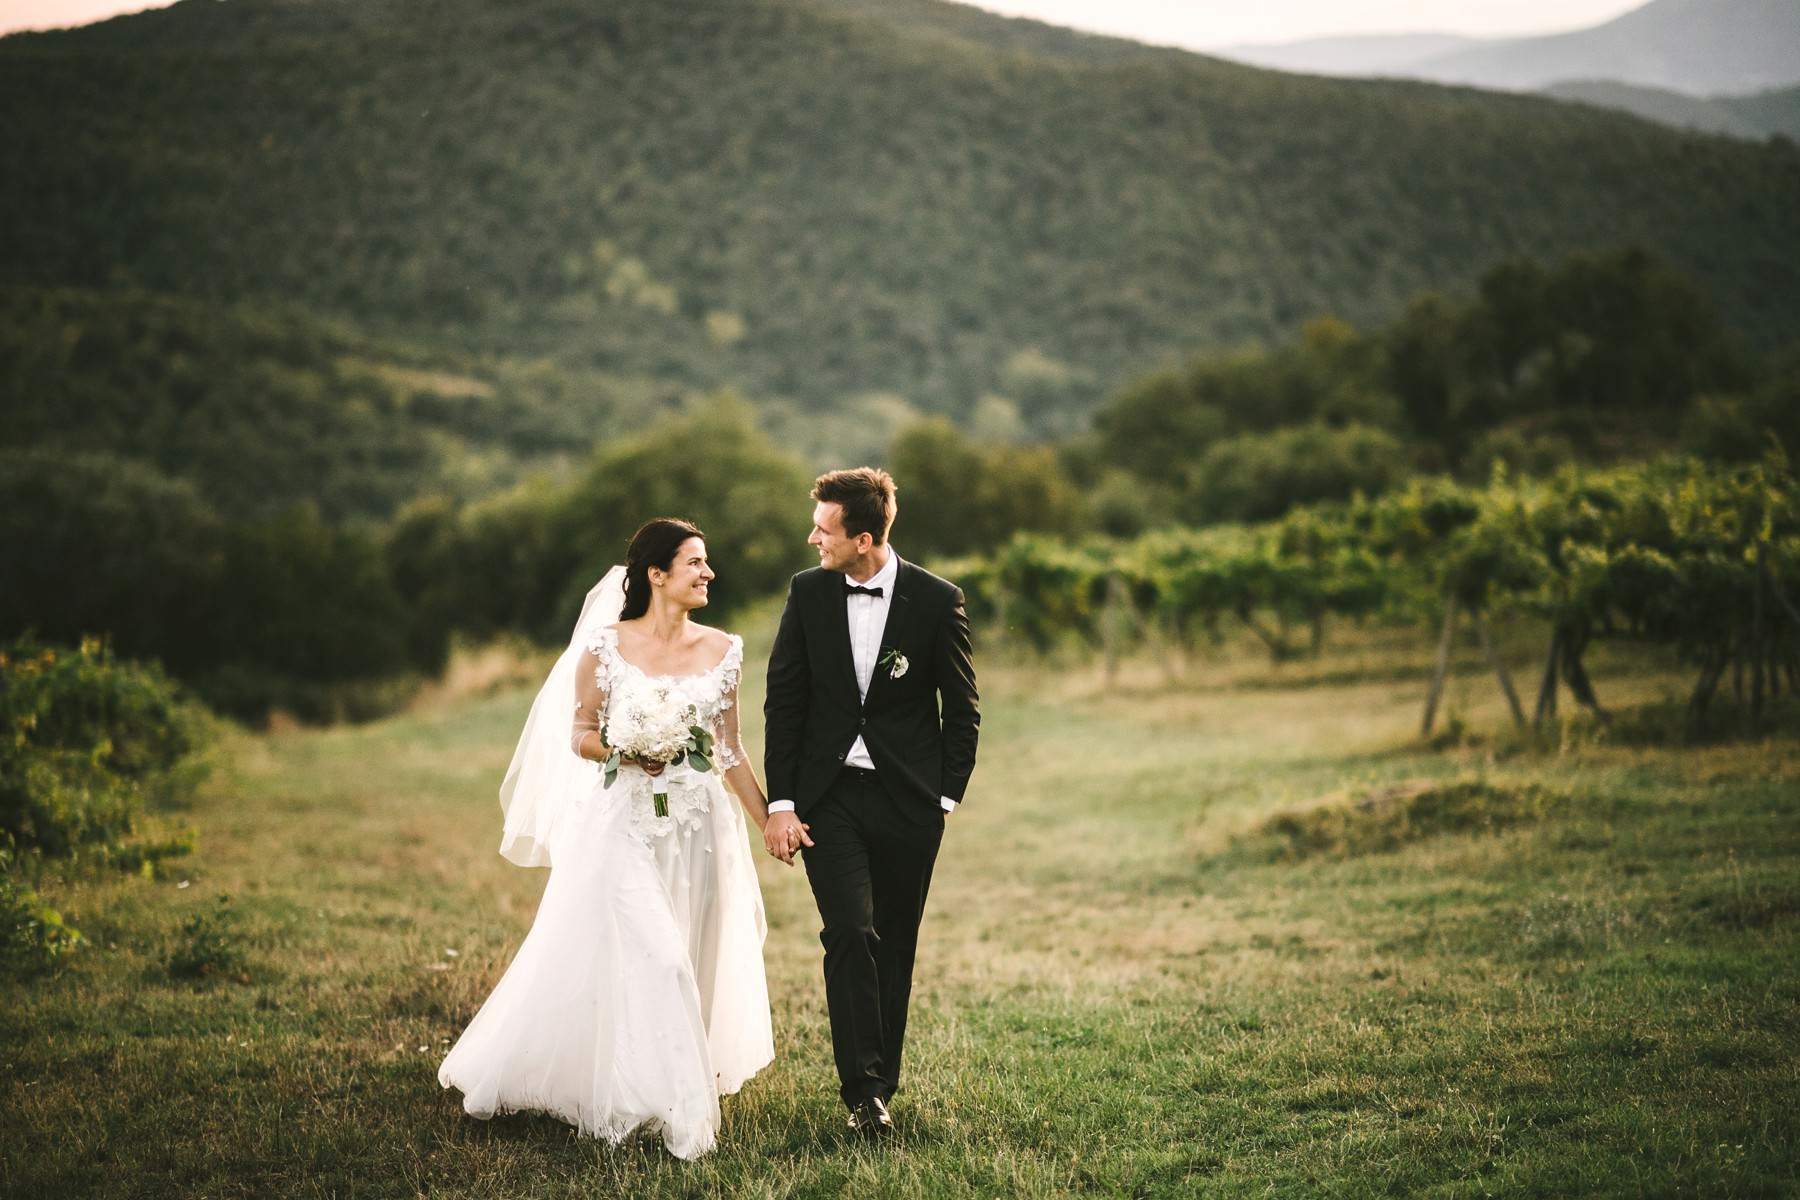 Bride and groom wedding photo at Montelucci country resort in Tuscany